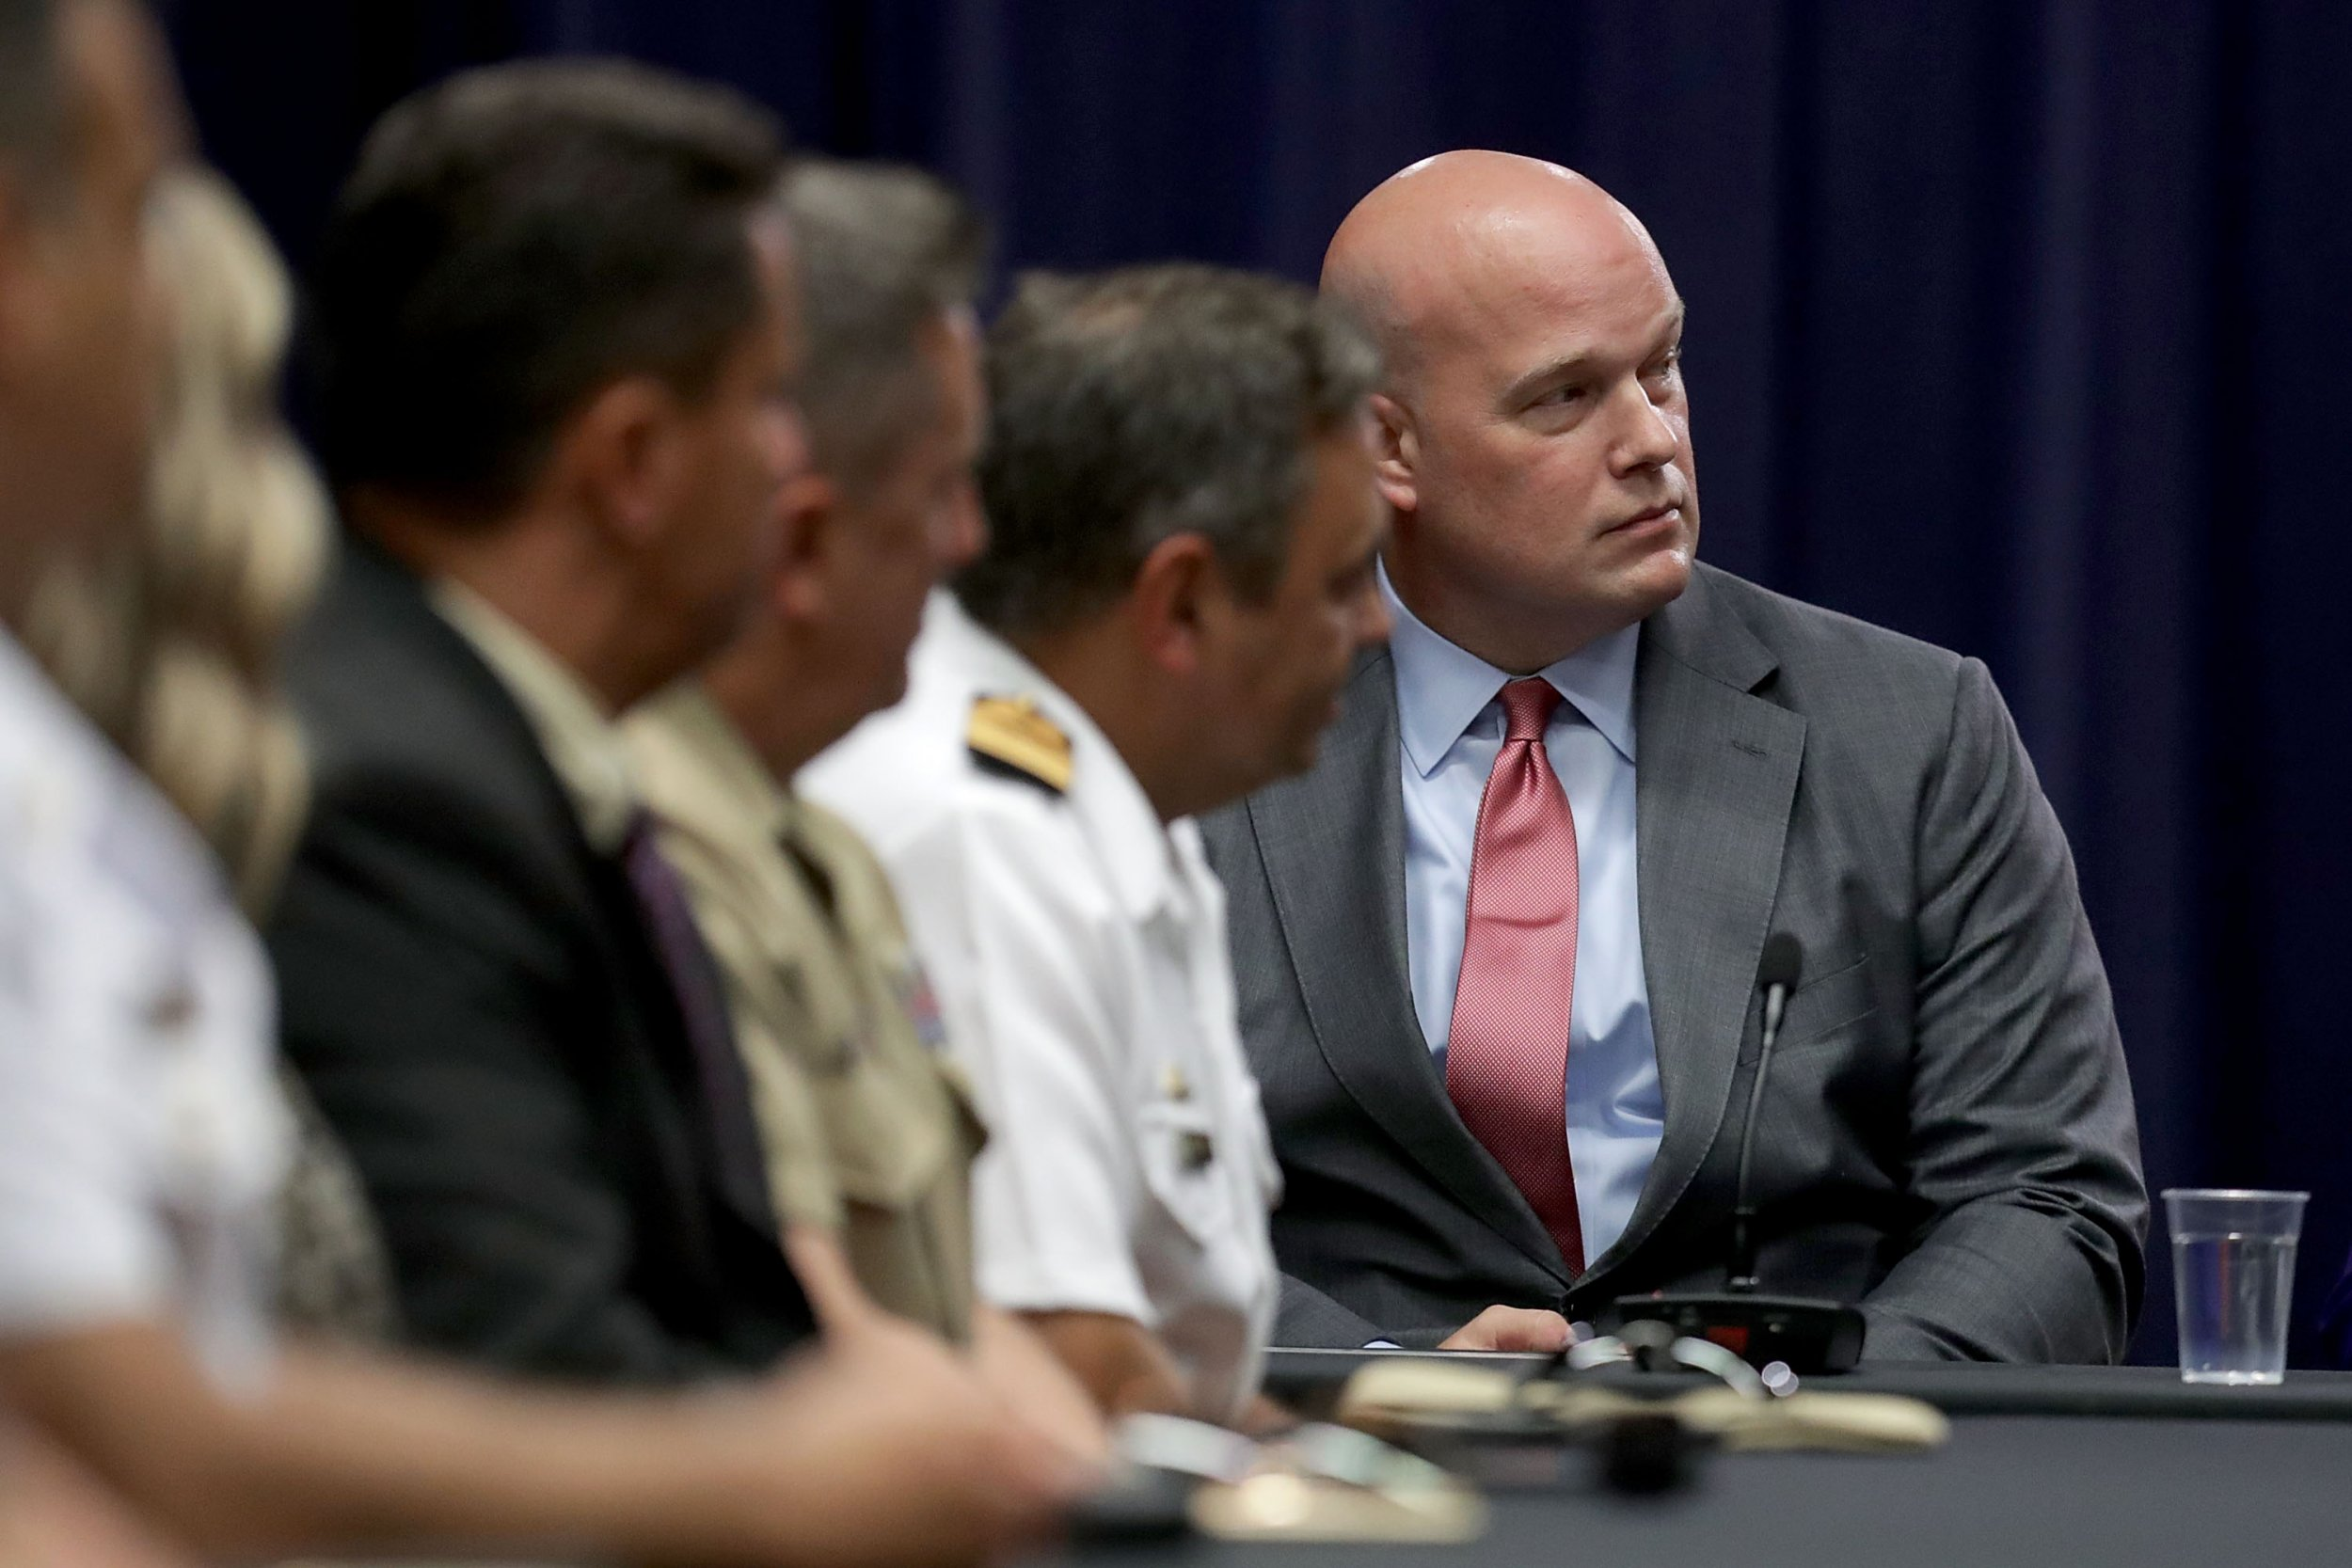 acting attorney general federal judges matthew whitaker